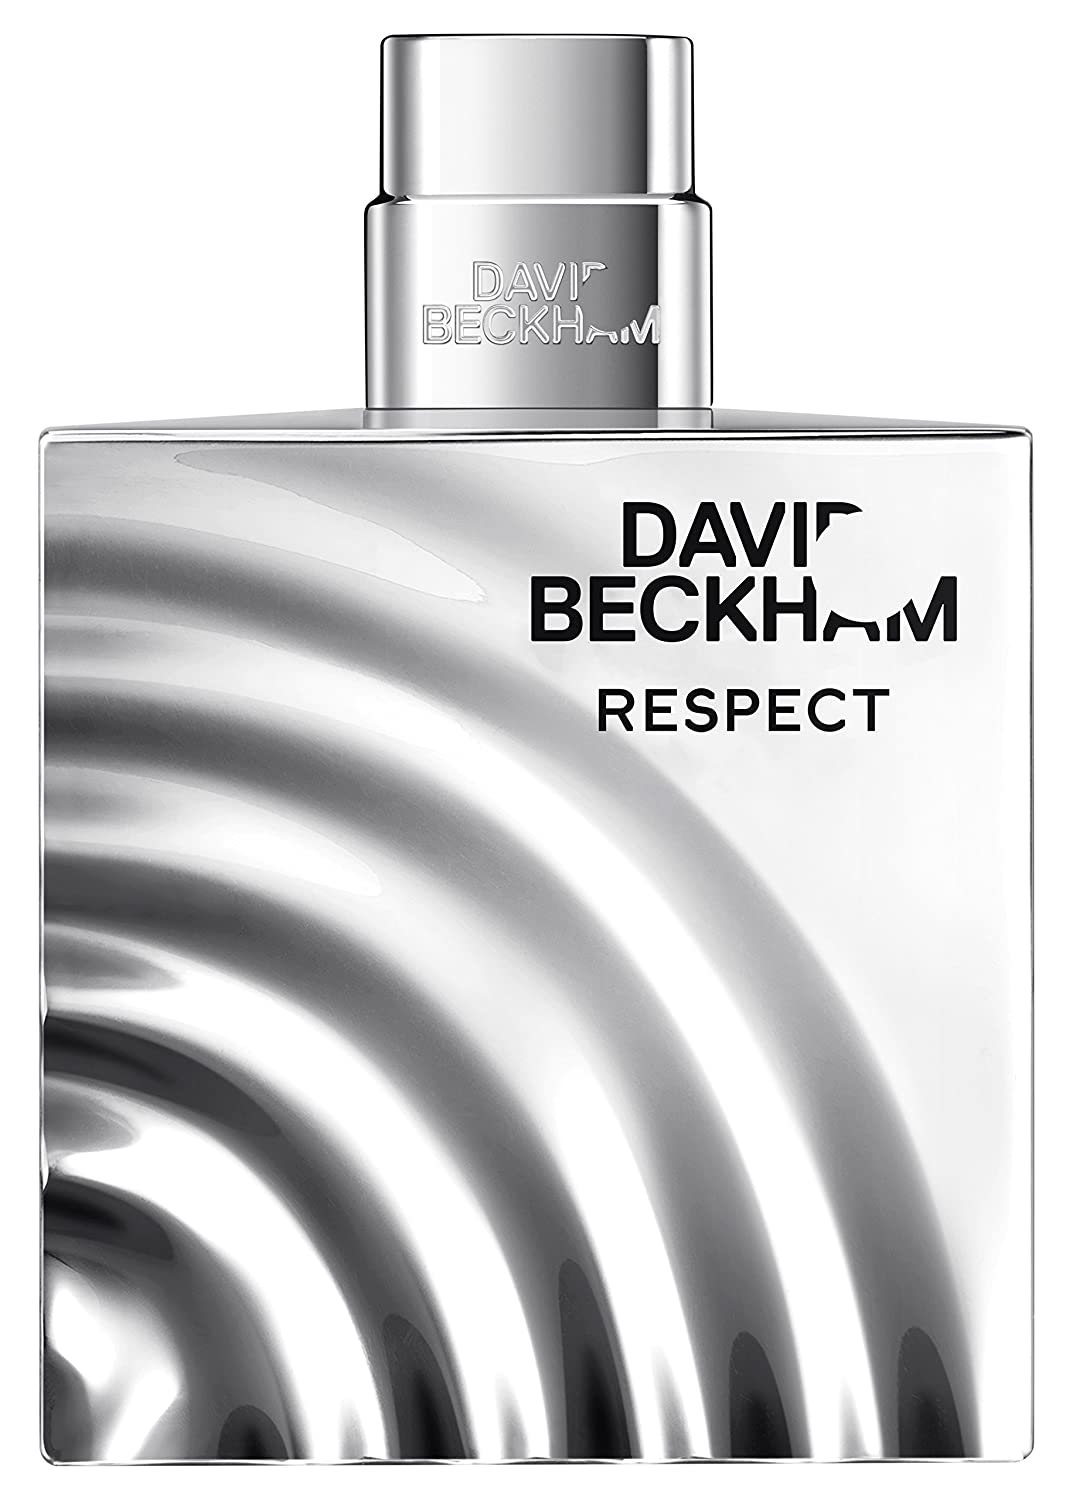 David Beckham, Set de fragancias para hombres - 50 ml. Coty 32997390000